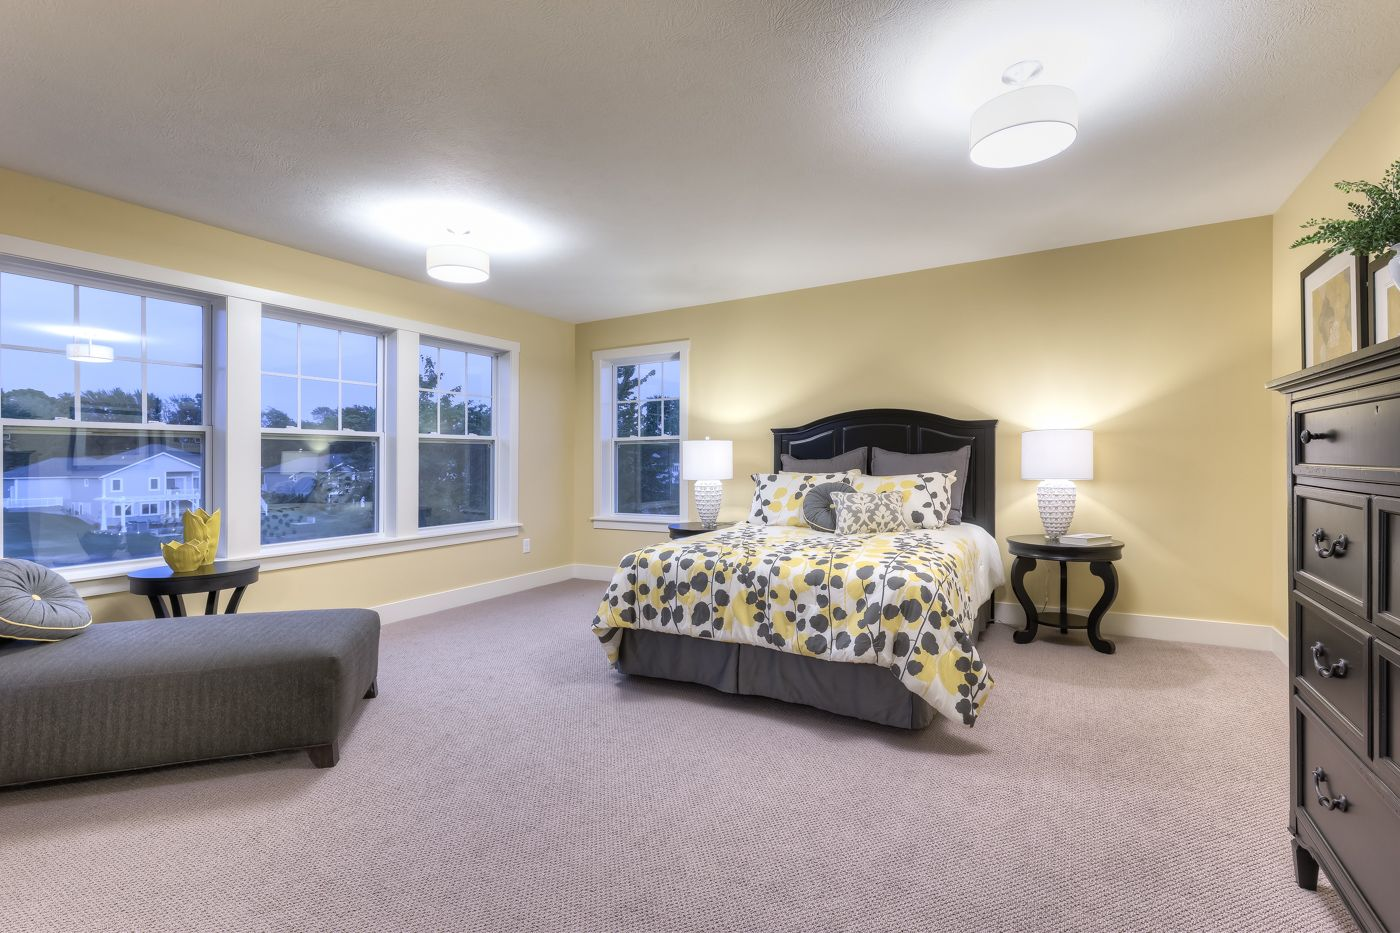 Bedroom featured in the Elements 2200 By Allen Edwin Homes in South Bend, IN